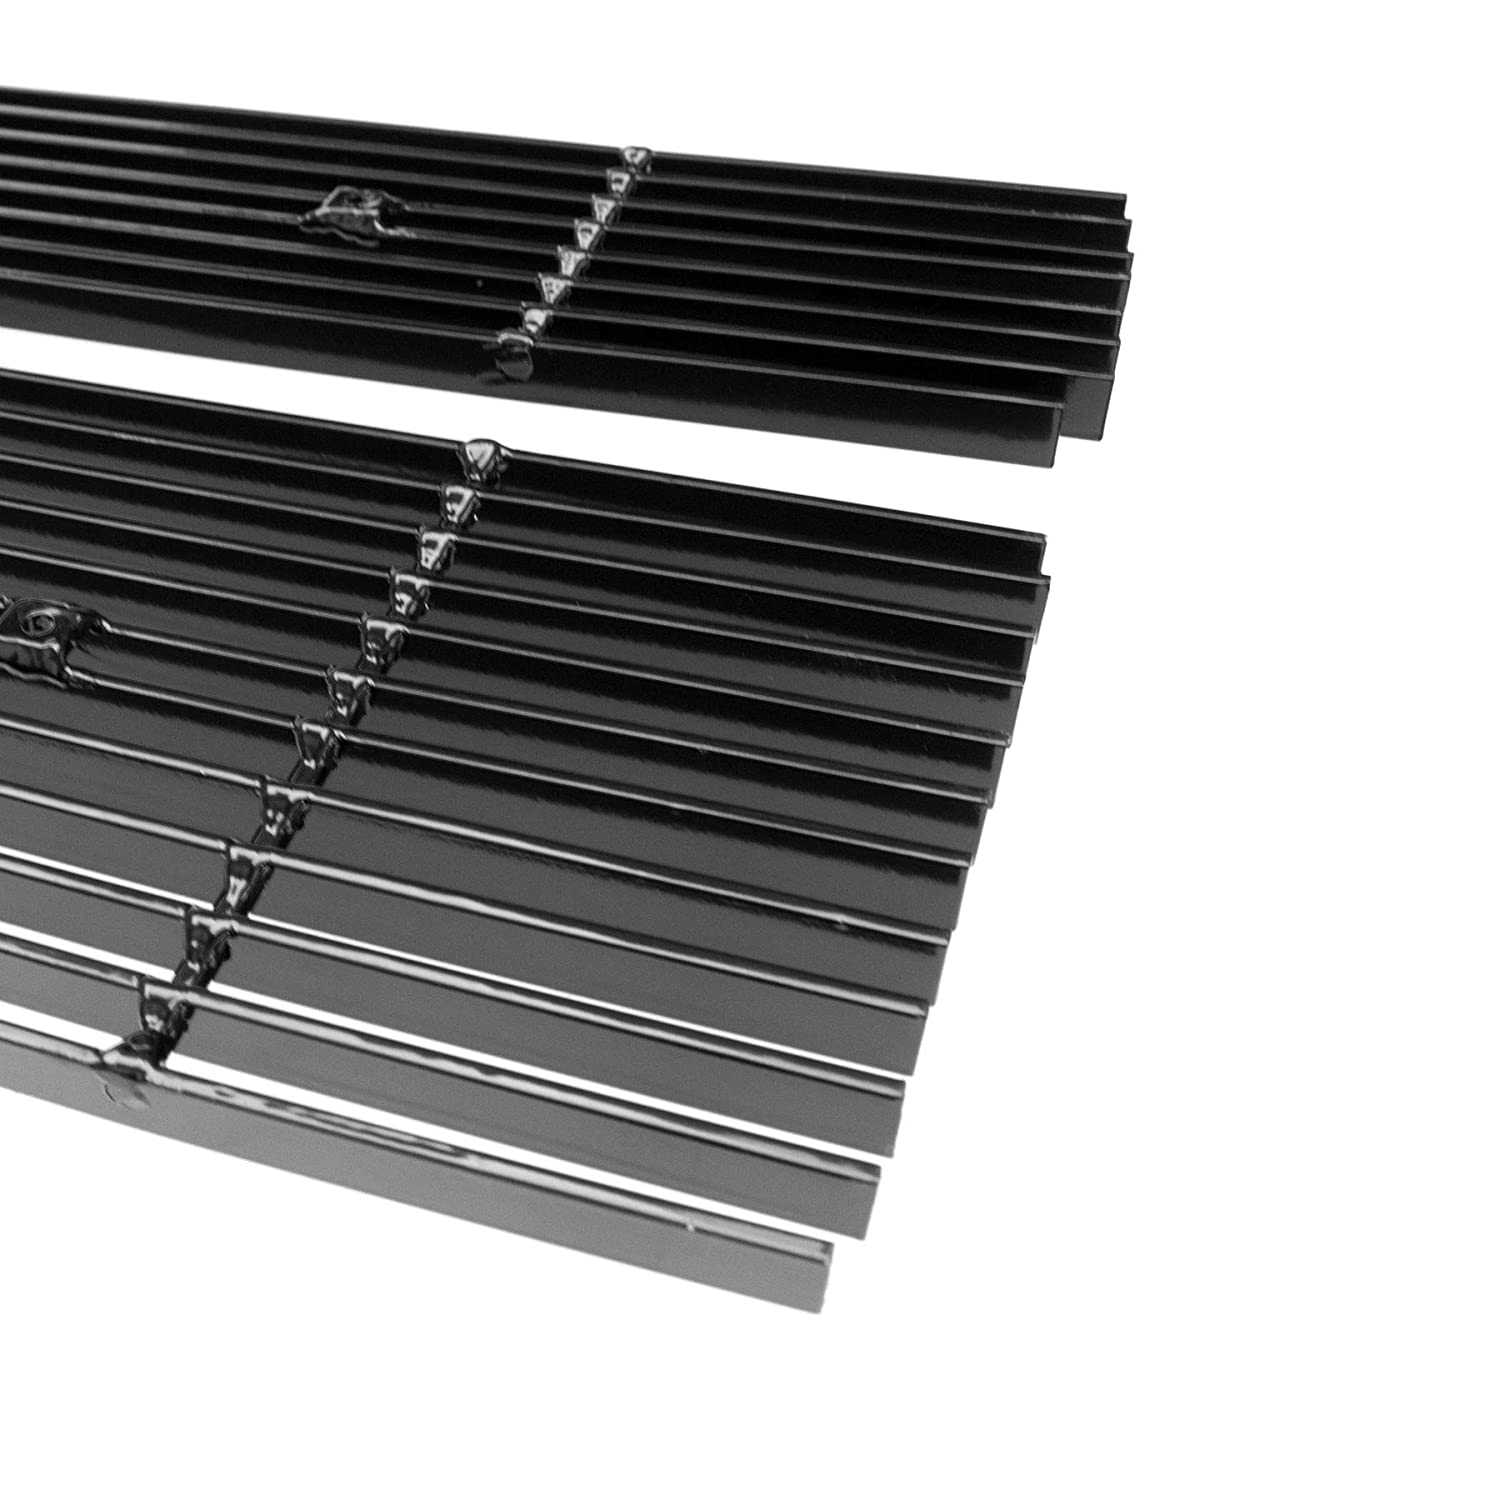 3pcs Black Billet Grille Grill COMBO Grill Insert Fits 2014-2015 Chevy Silverado 1500